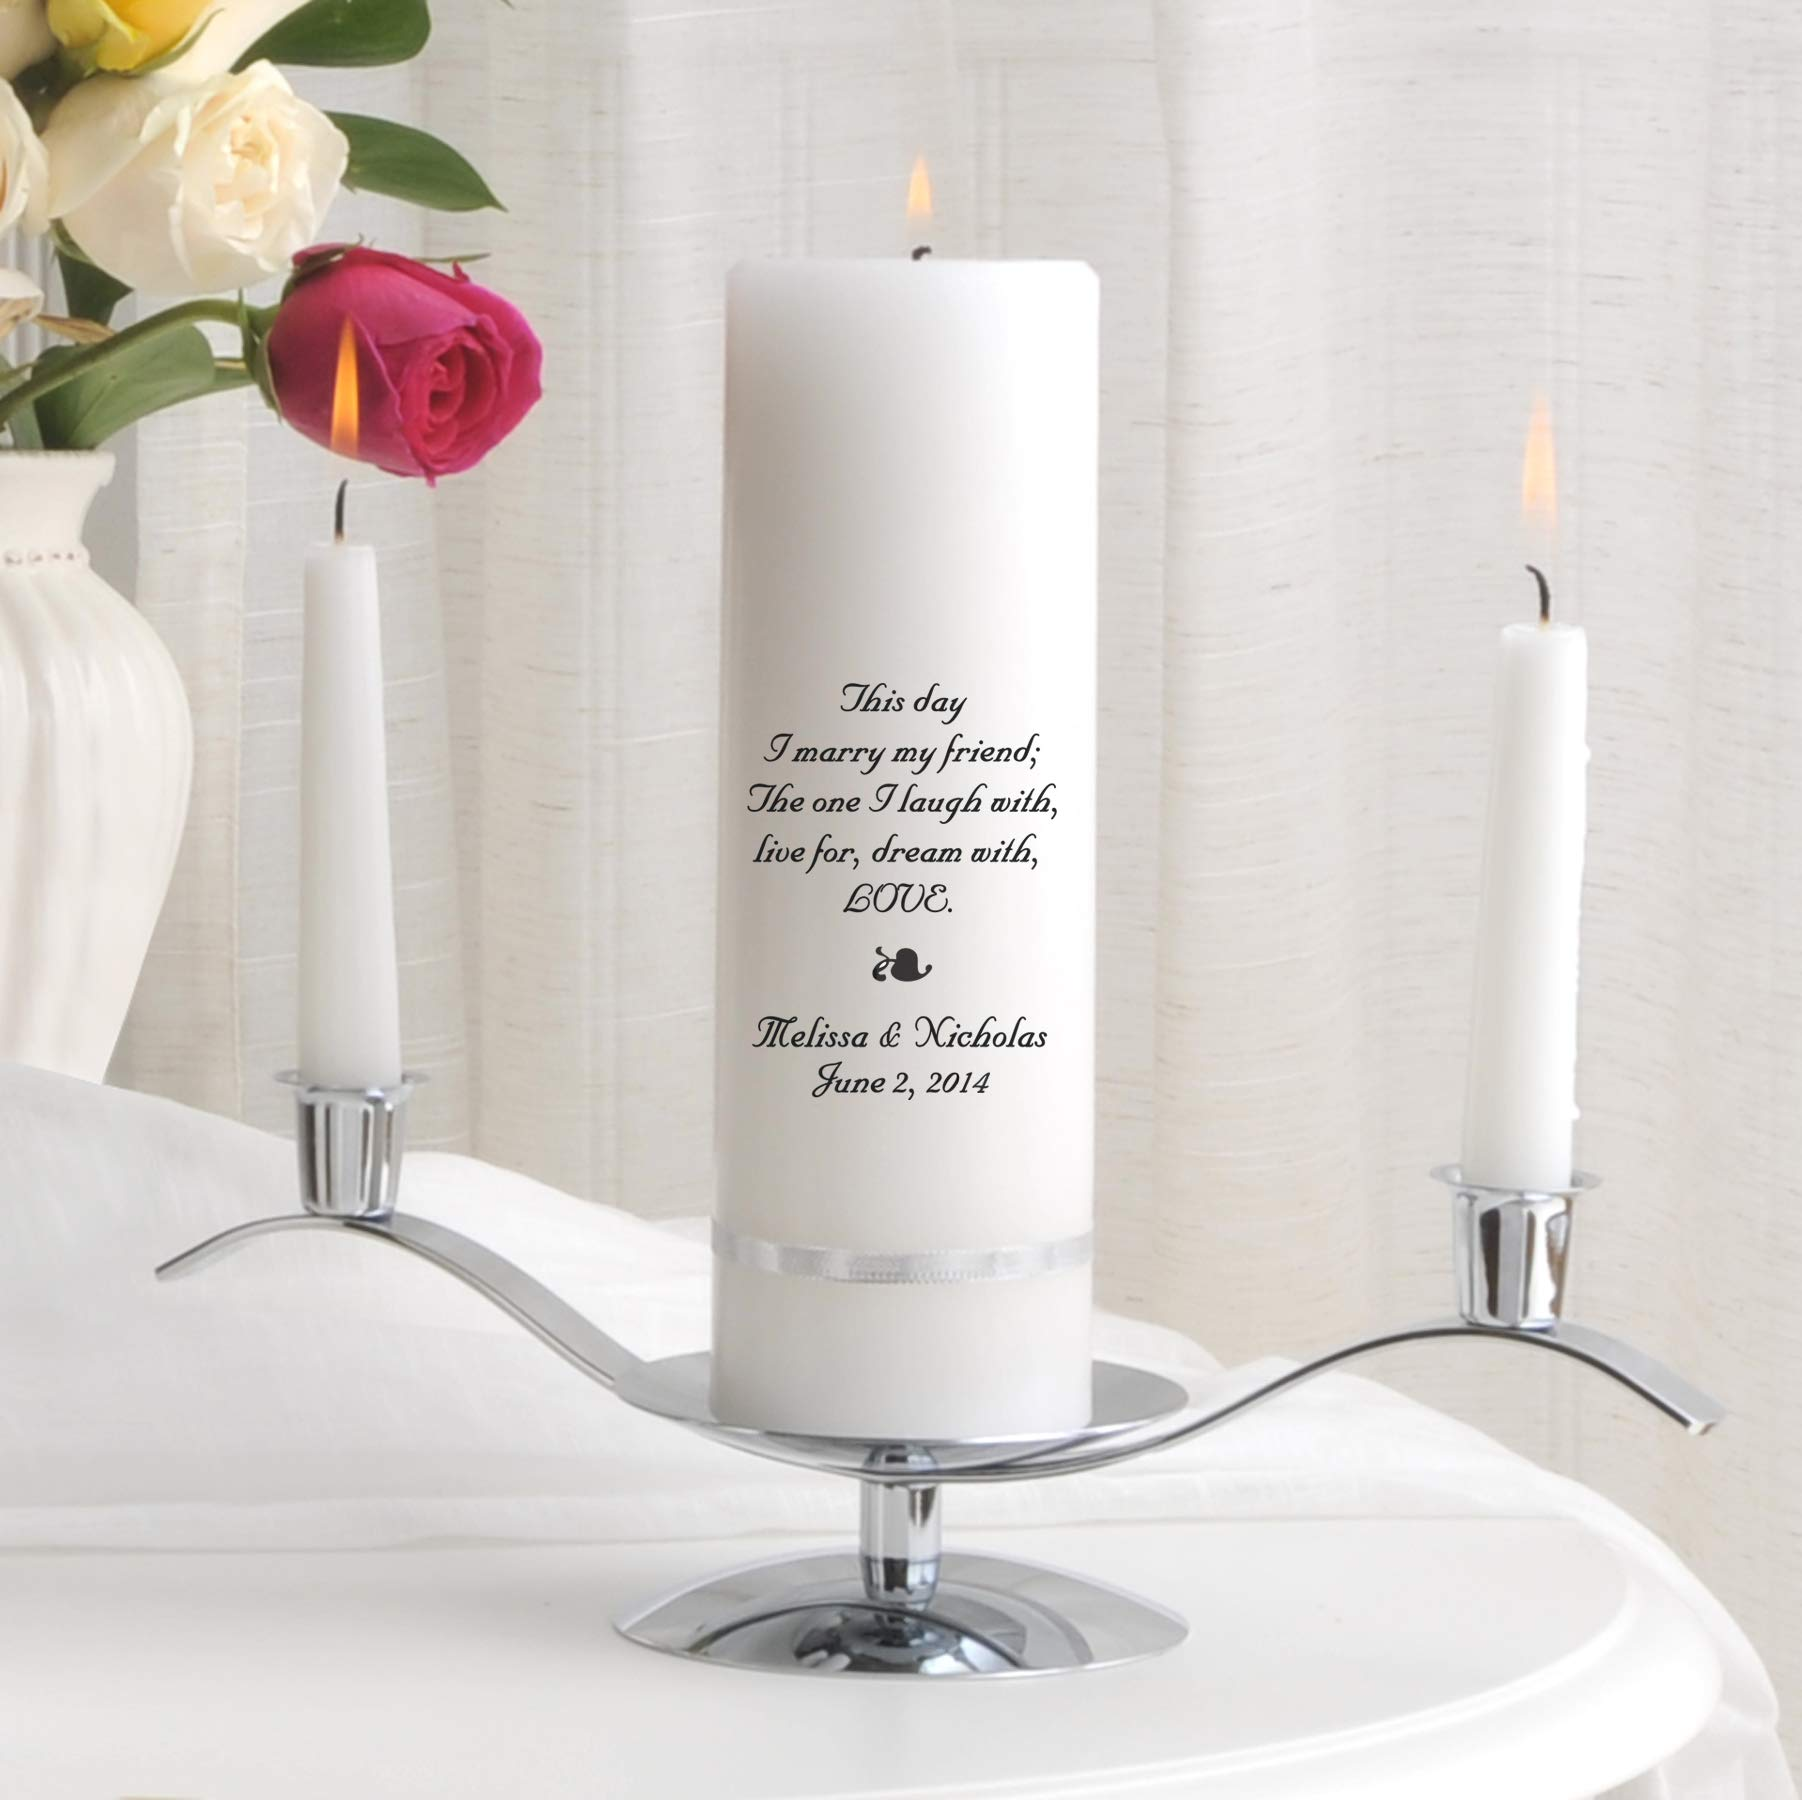 Personalized Unity Wedding Candle Set - Personalized Wedding Candle - Includes Stand - This Day by A Gift Personalized